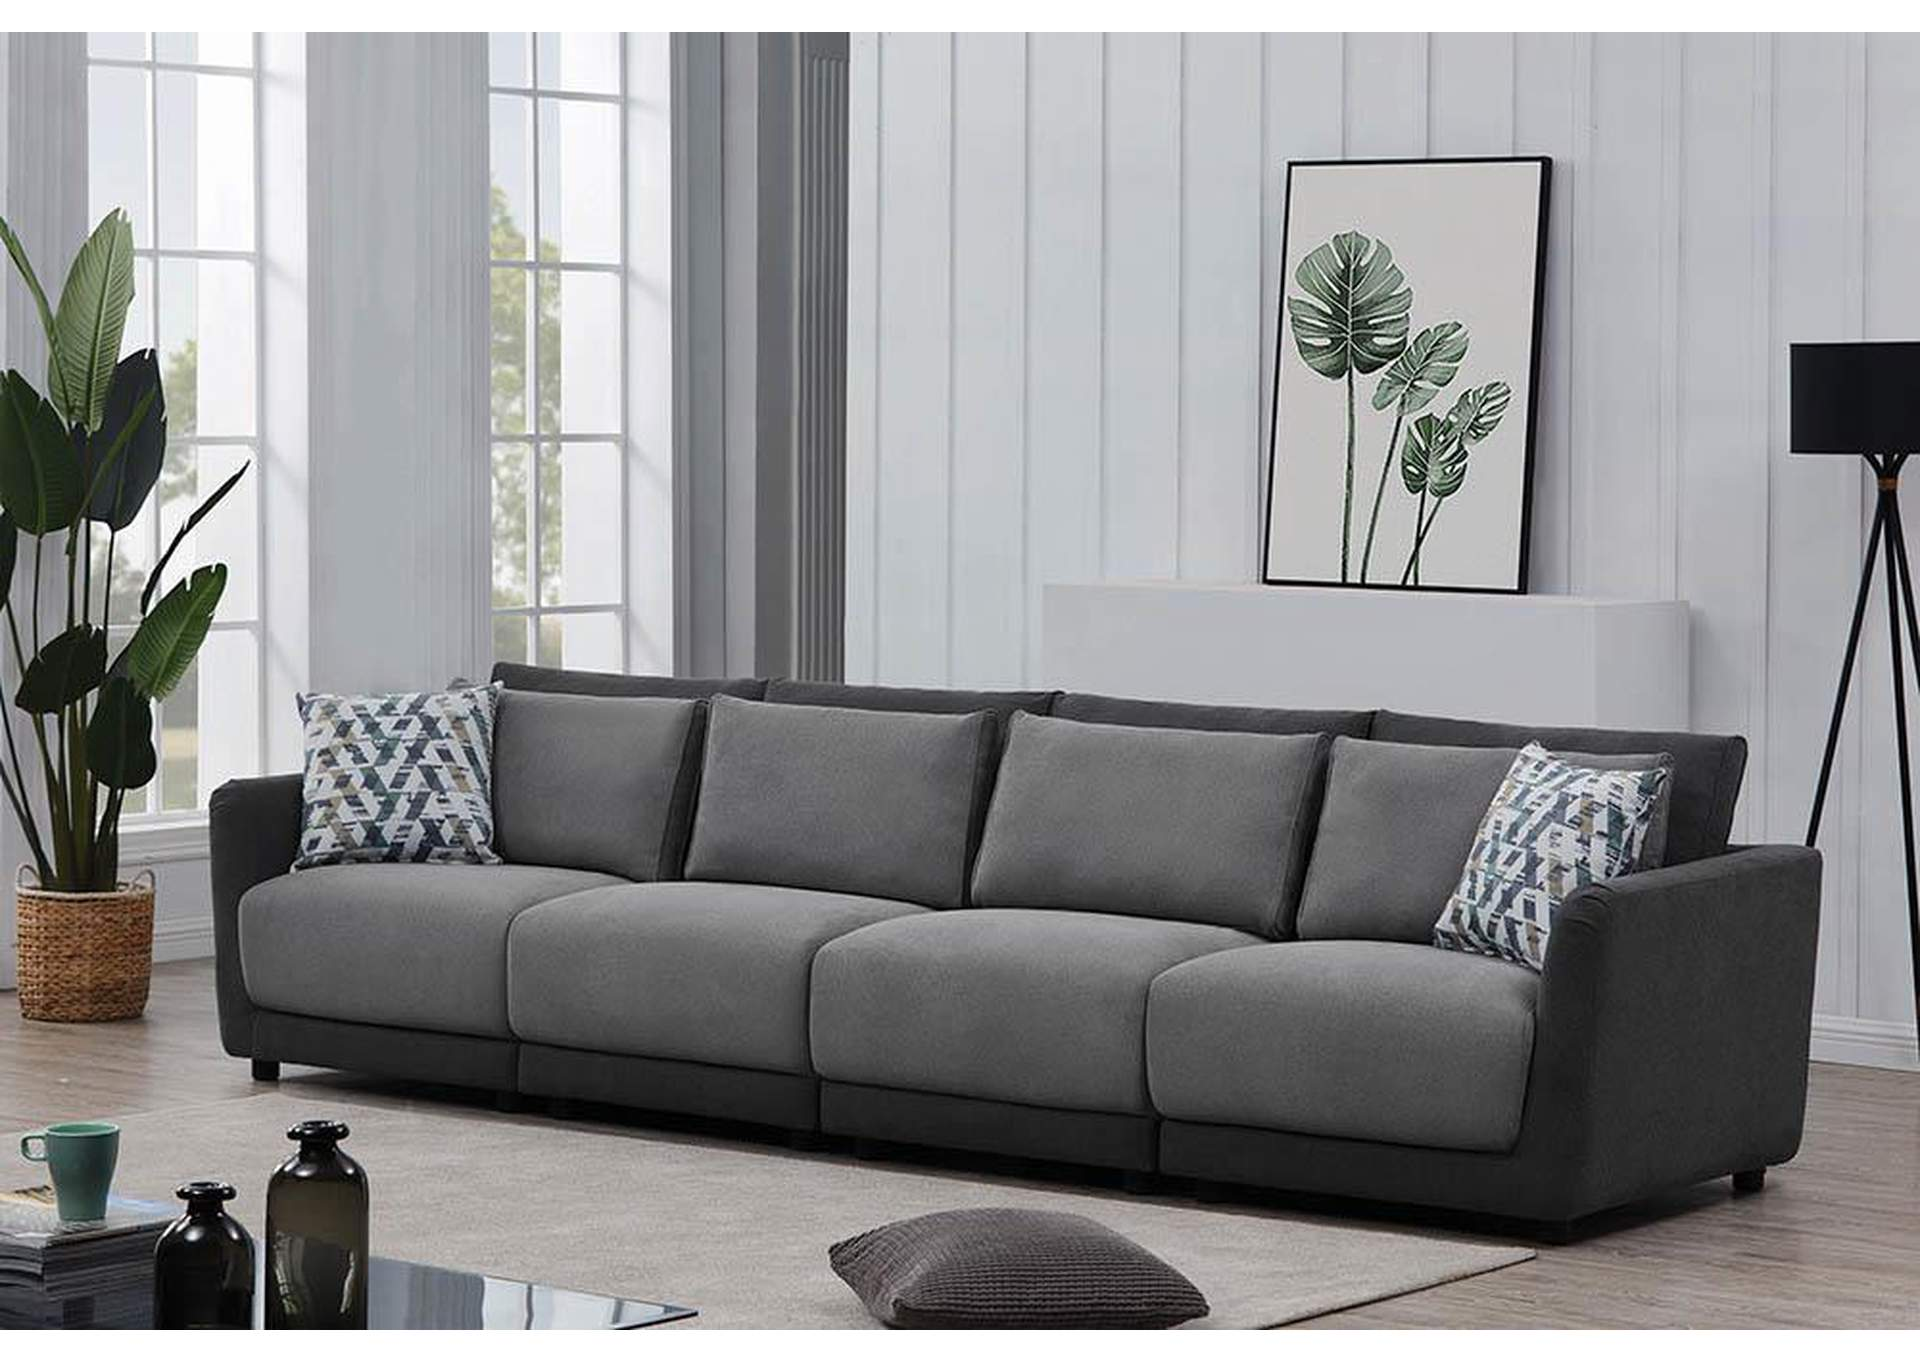 Seanna Two-Tone Grey 4 Piece Sectional Sofa,Coaster Furniture